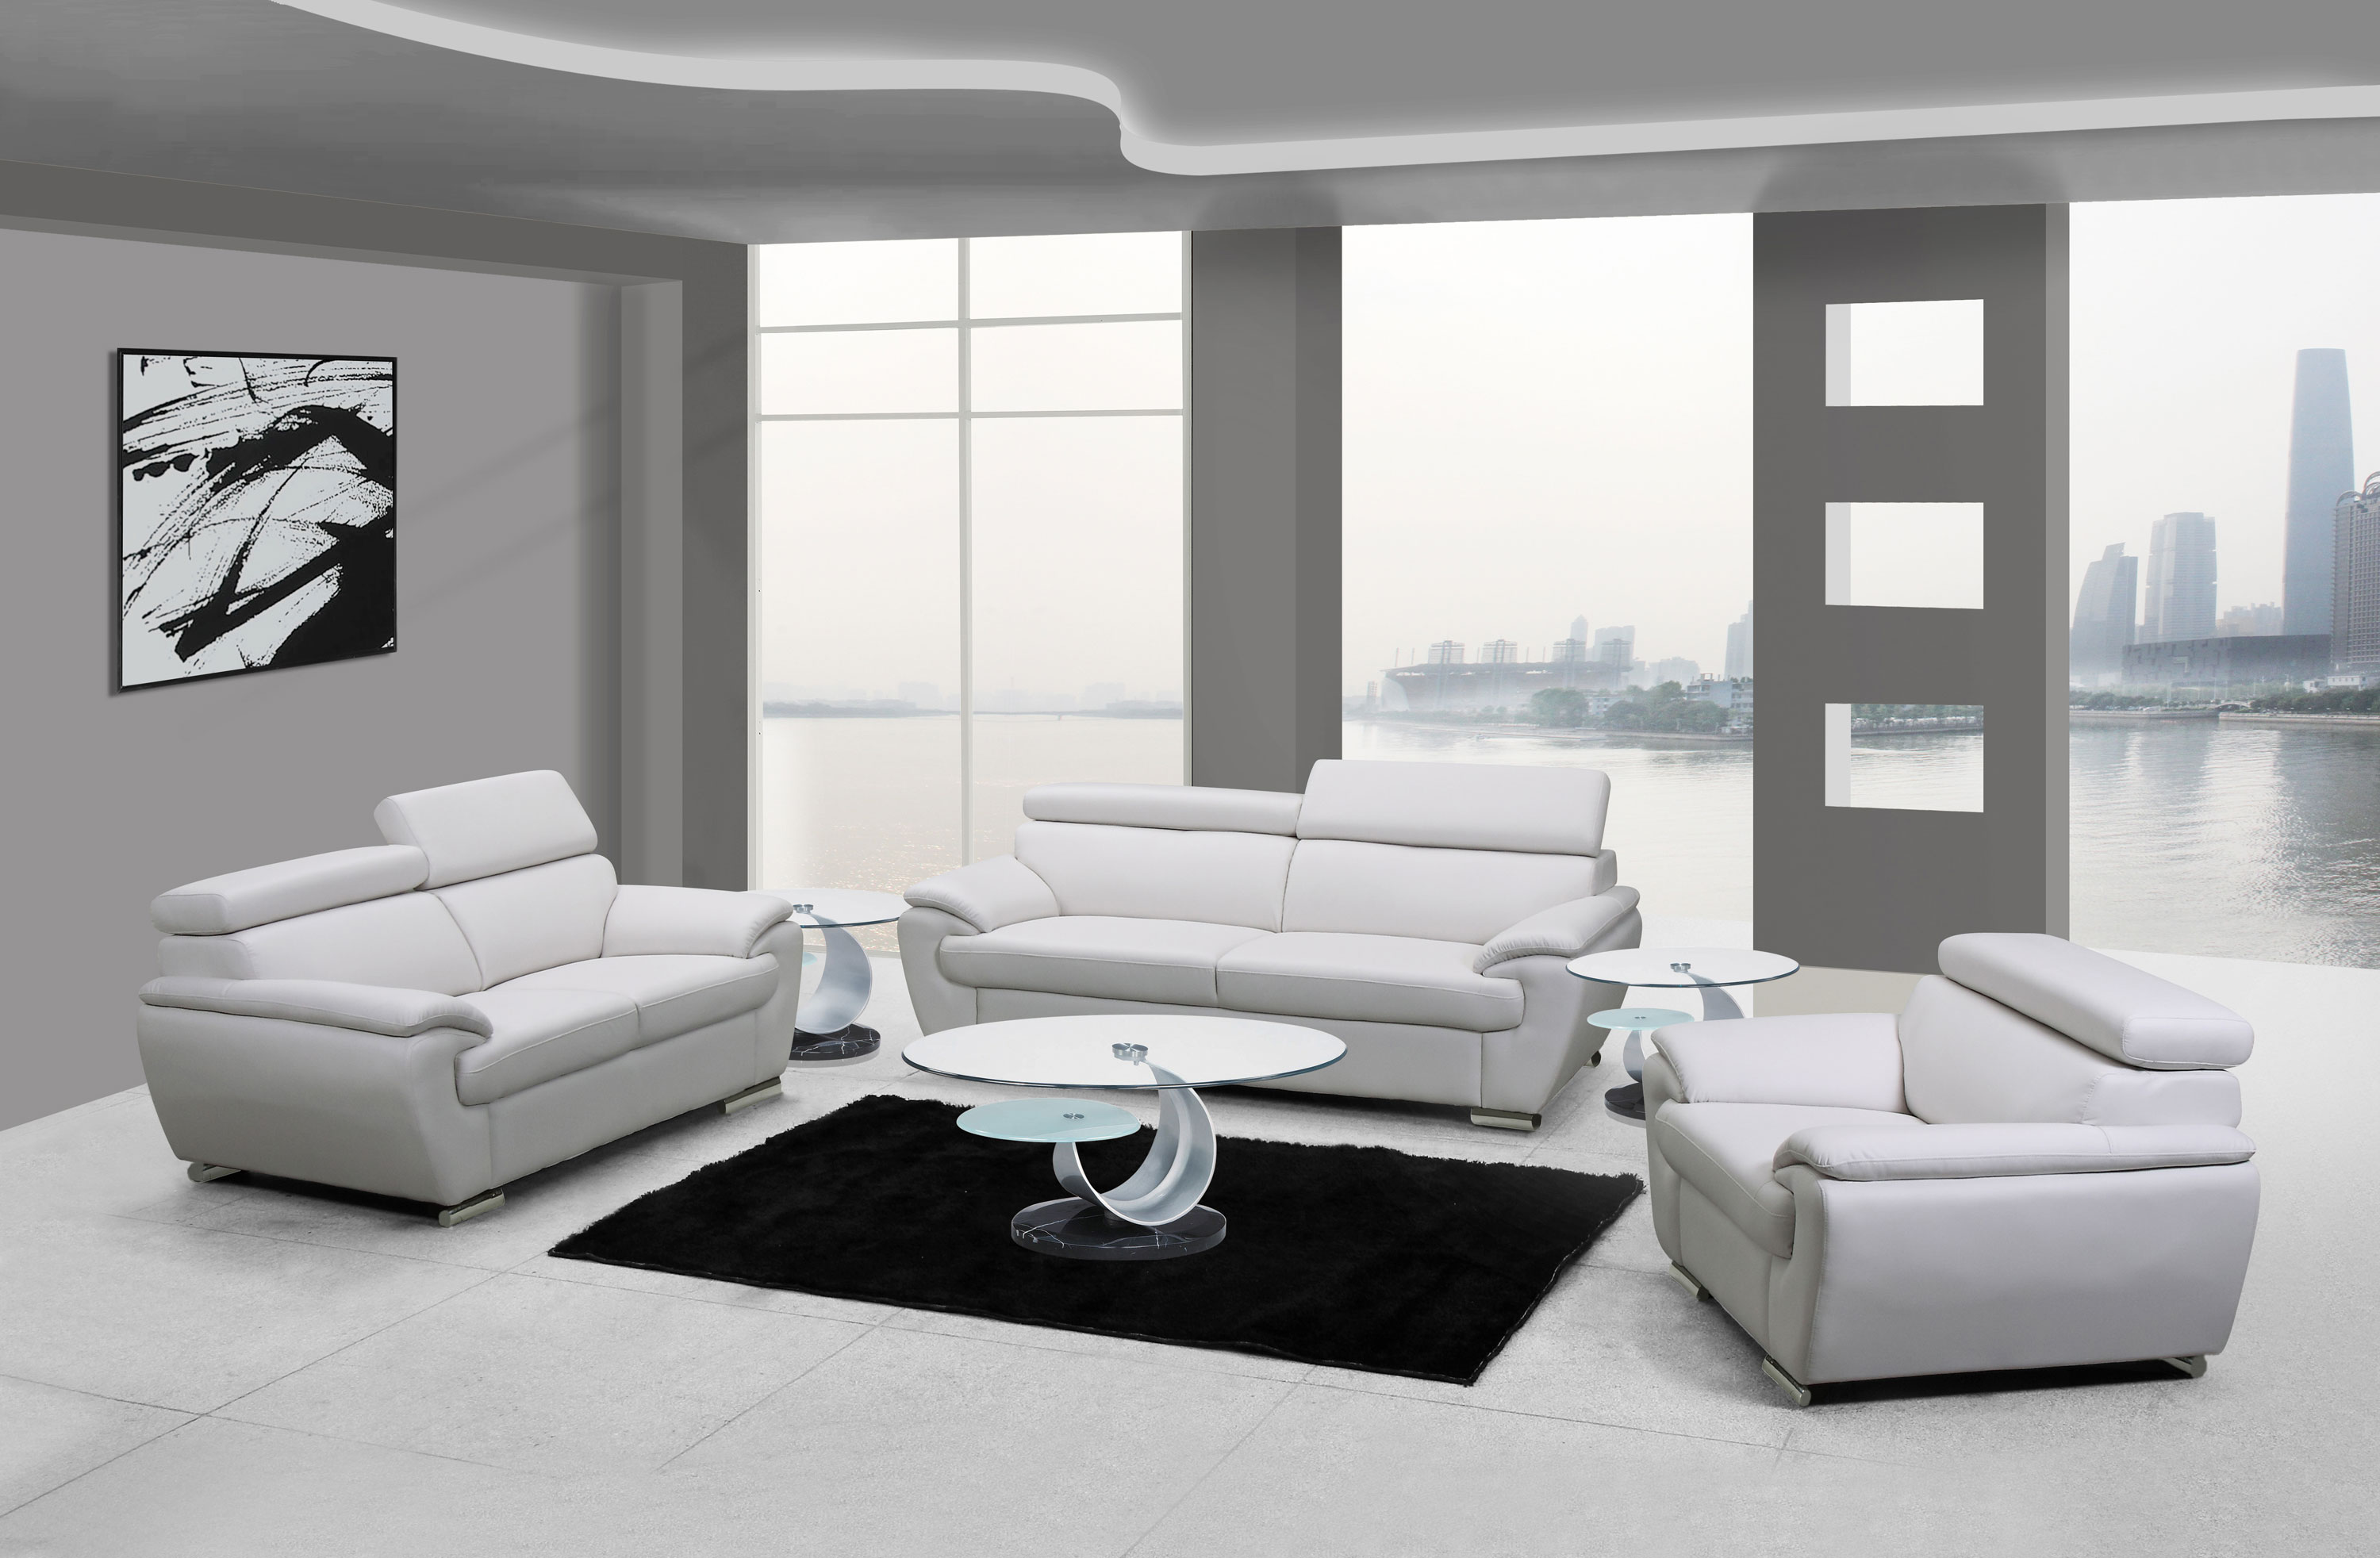 spaces wood rug white sofa wall steel lamp furniture ideas cream with livings display brown room design couch legs leather ottoman border rack contemporary saving gray tufted glass sleeper brick laminated ottomans black full living rugs of floor table and stainless size dark window sectional curtain small fabric footstools